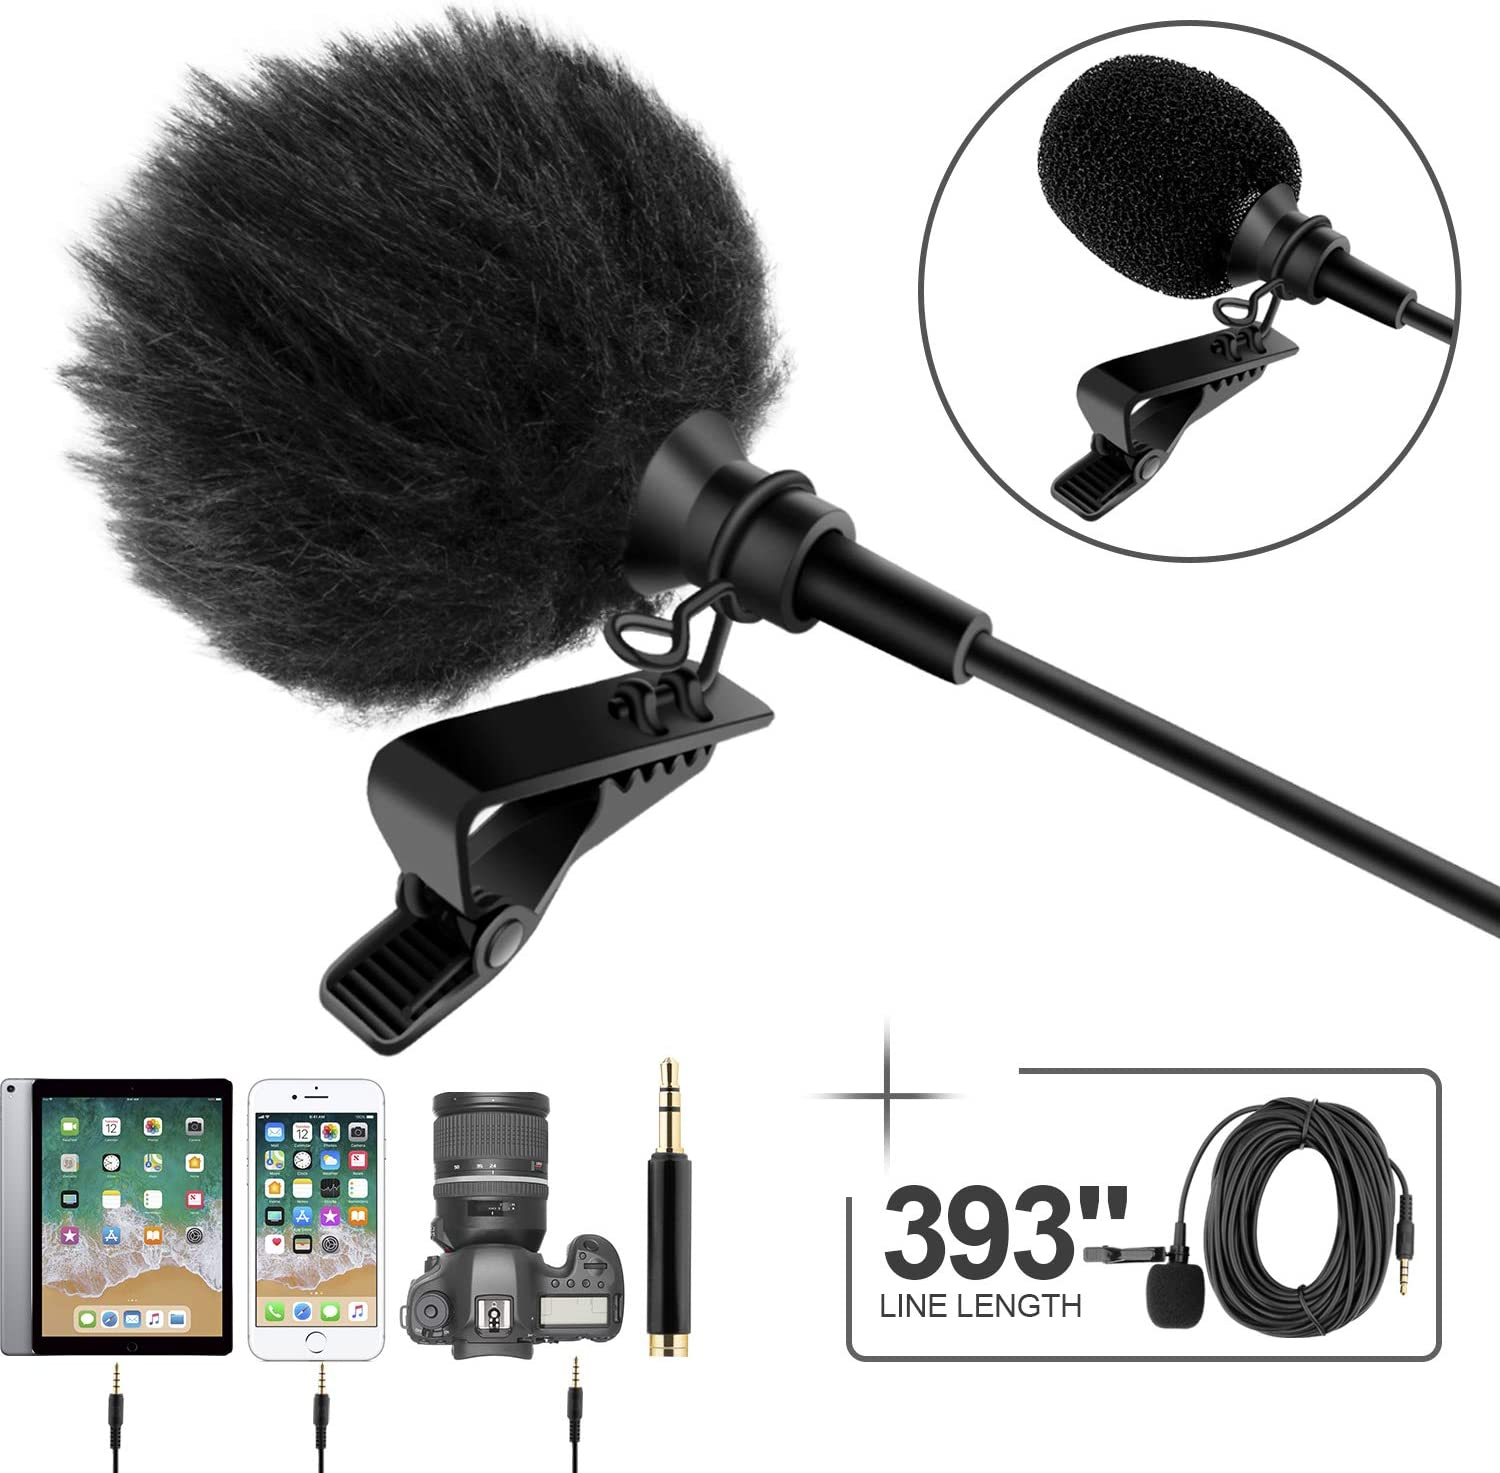 Free Video Equipment, Top 15 Almost Free YouTube Setup Equipment For Your Home Video Studio – DIY Gear Checklist